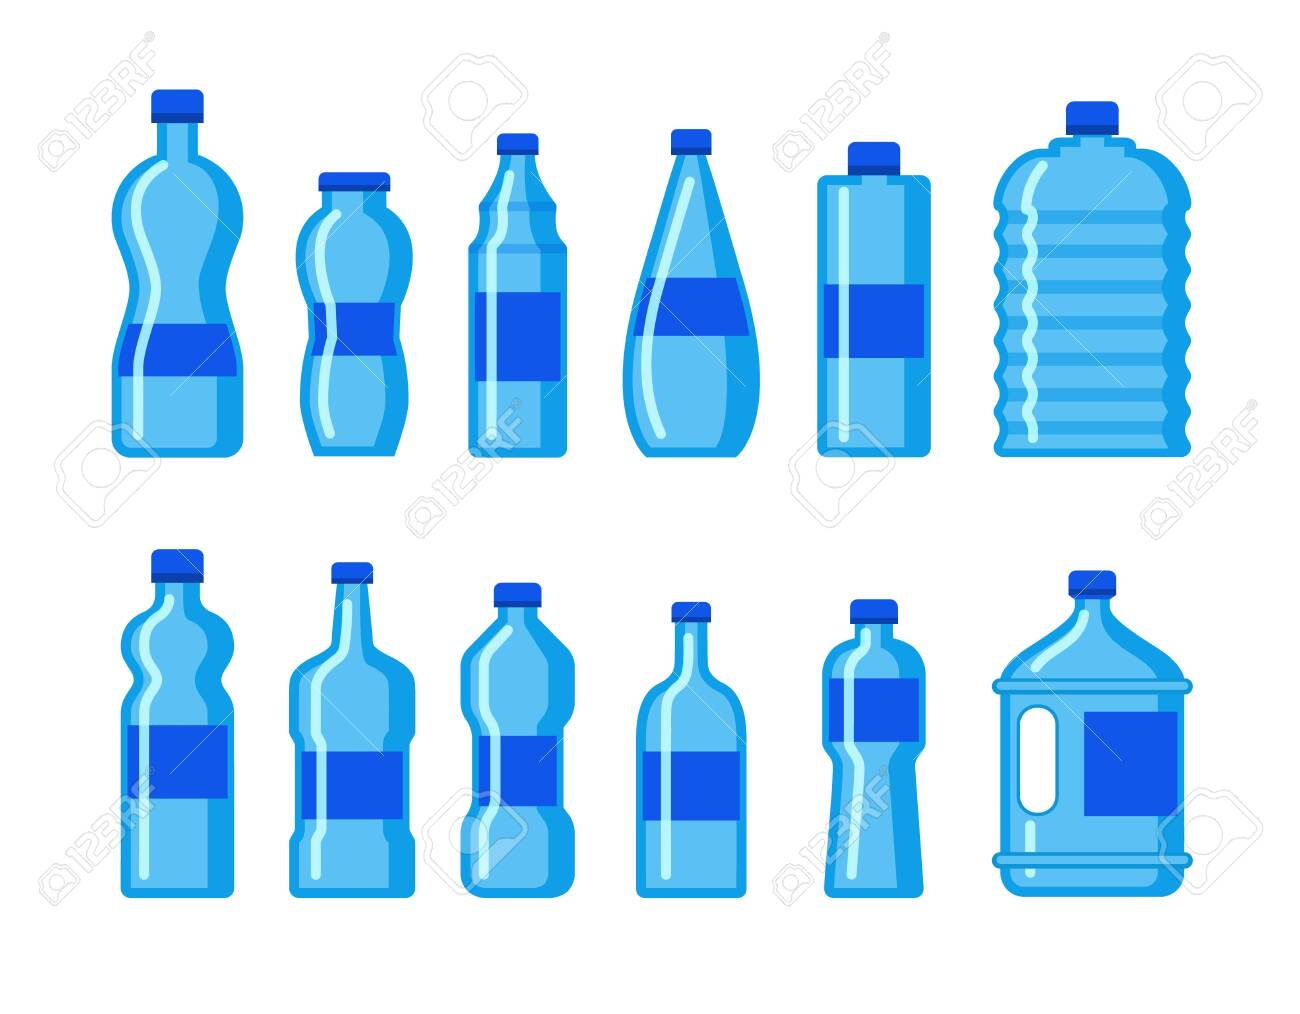 Plastic Water Bottle Icon Blue Liquid Container Drink Bottle Royalty Free Cliparts Vectors And Stock Illustration Image 128905239